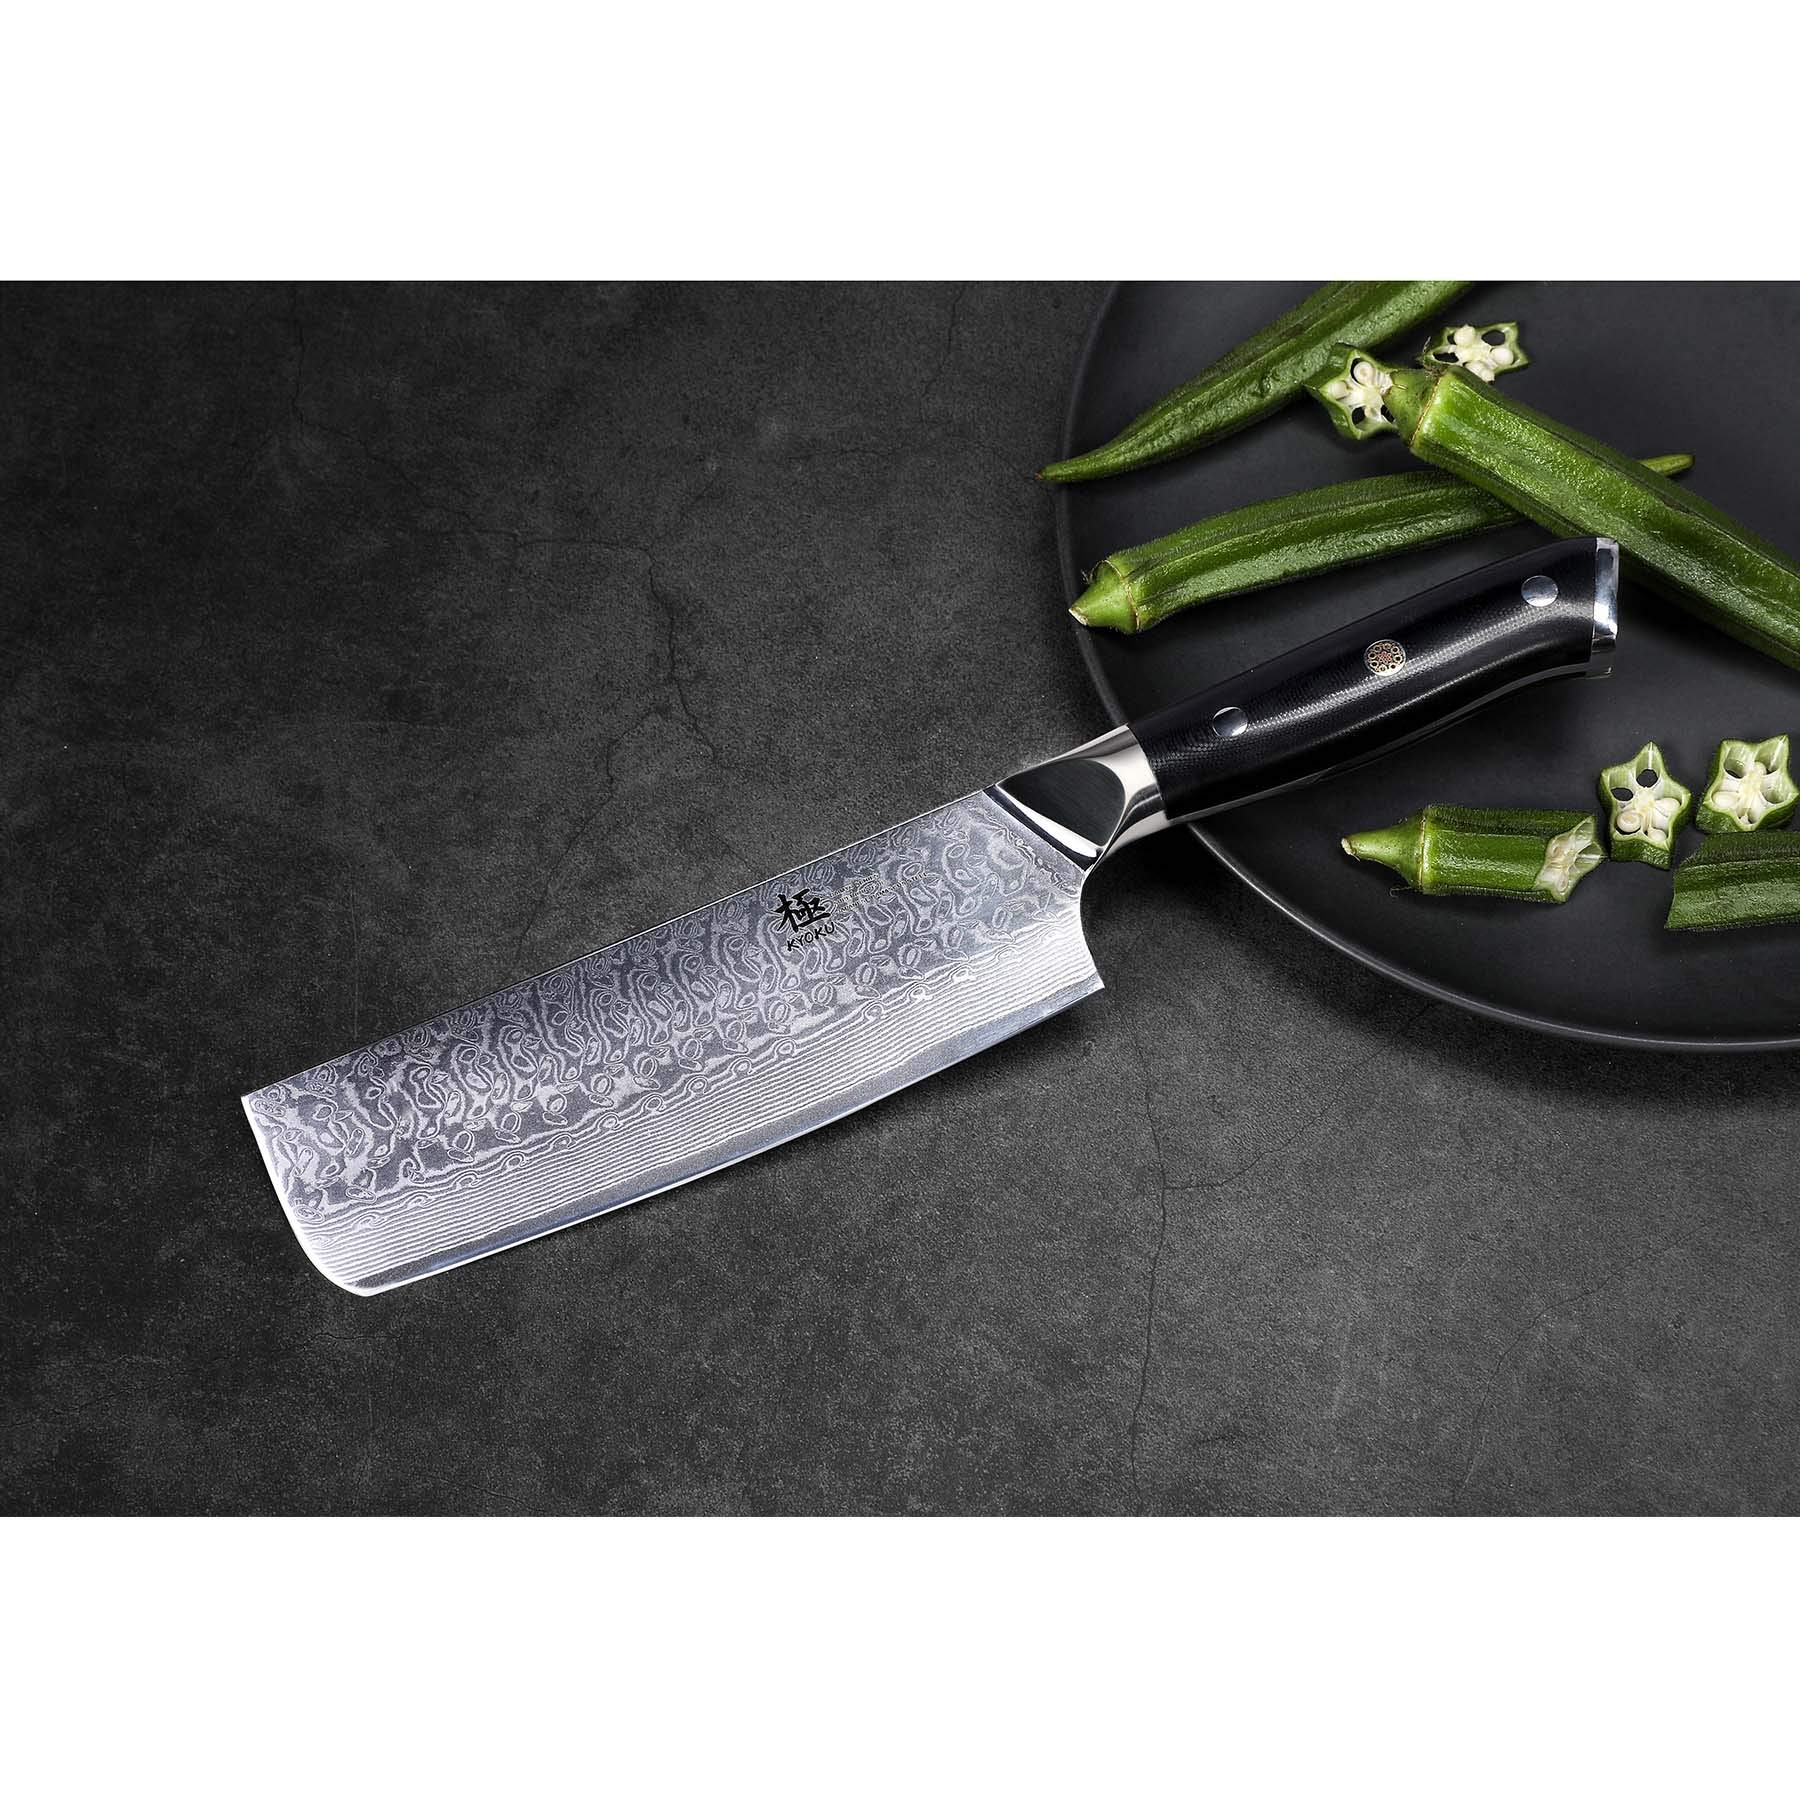 KYOKU Daimyo Series - 6-Inch Nakiri Vegetable Chef Knife with Sheath Case - Japanese VG10 Steel Core 67-Layer Forged Damascus Blade - Full Tang - G10 Handle with Mosaic Pin by KYOKU (Image #5)